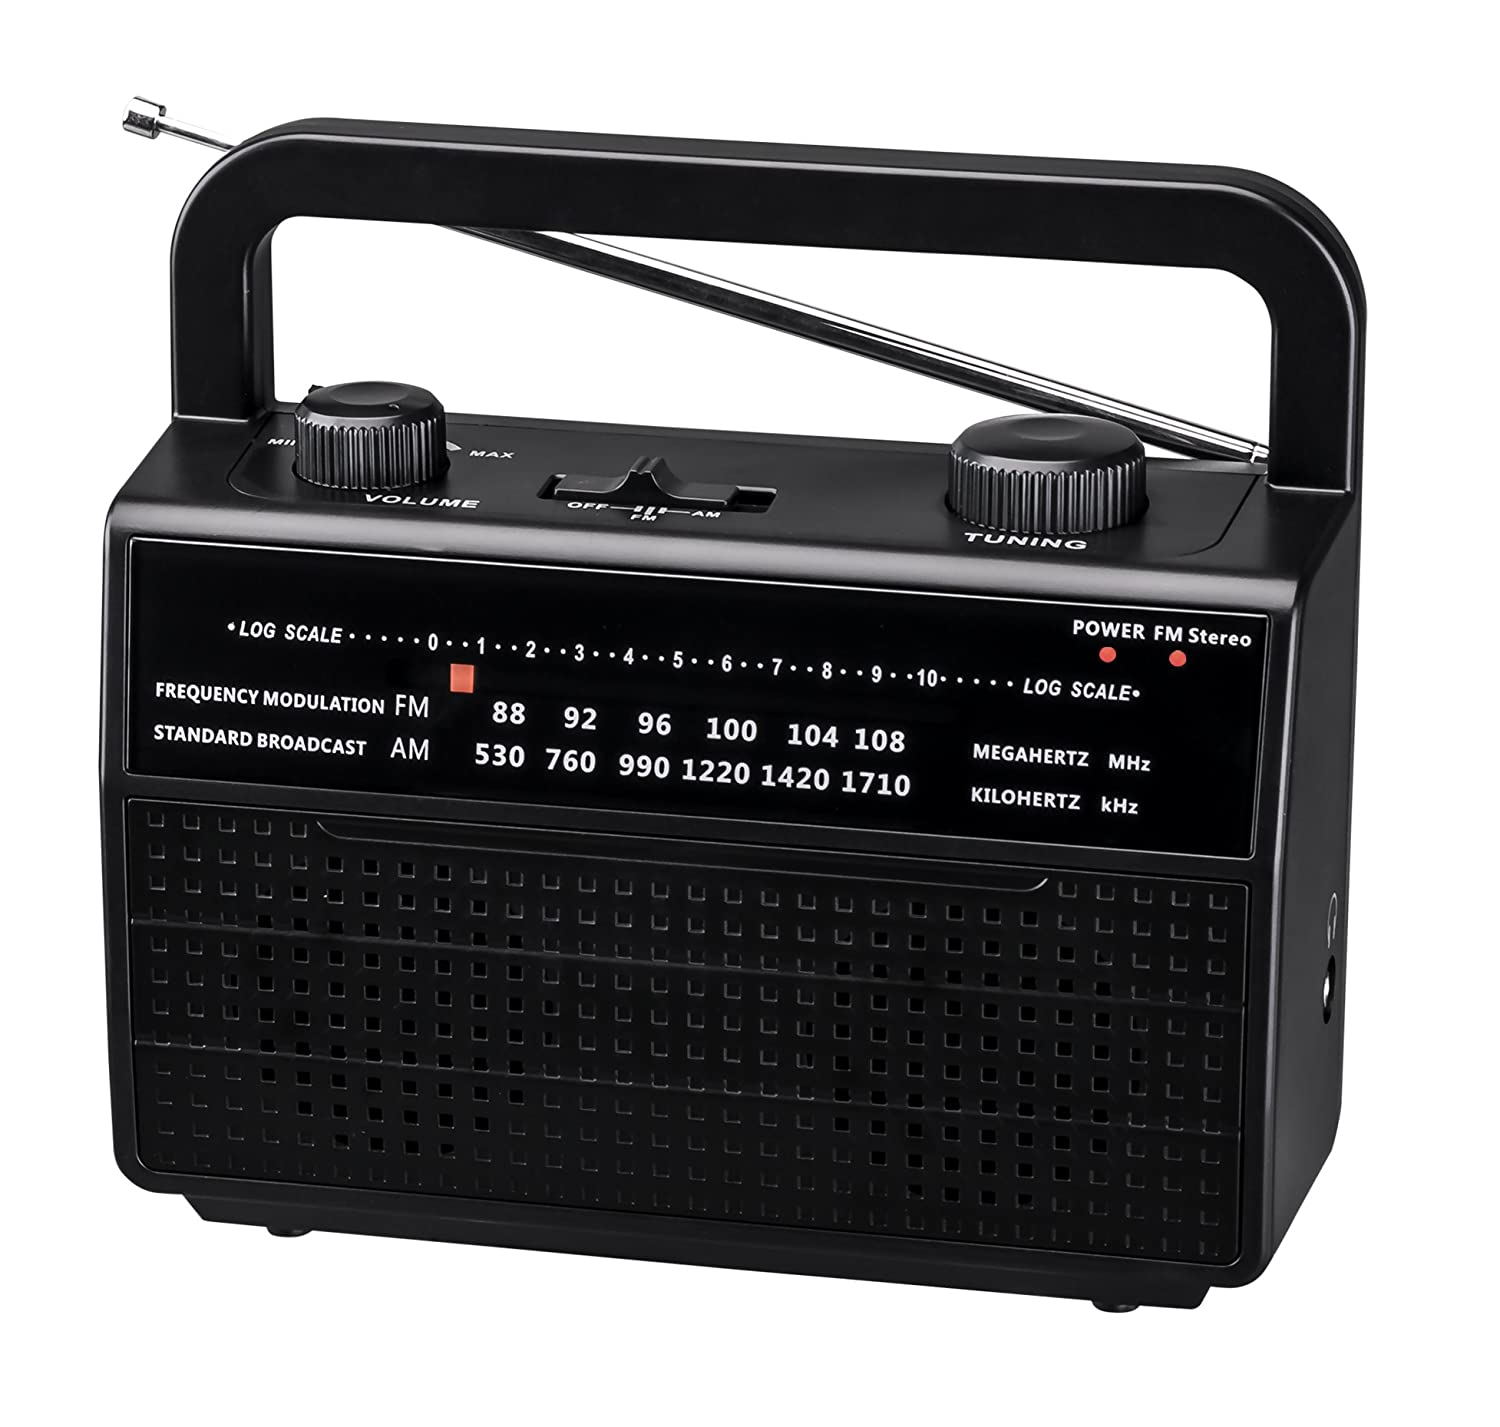 PR-157 AM/FM 2 Band Portable Radio AC Operated or Operated by Dry Battery (D Size x 4pcs, Battery not Included), Black Tak Tung Industries Ltd.